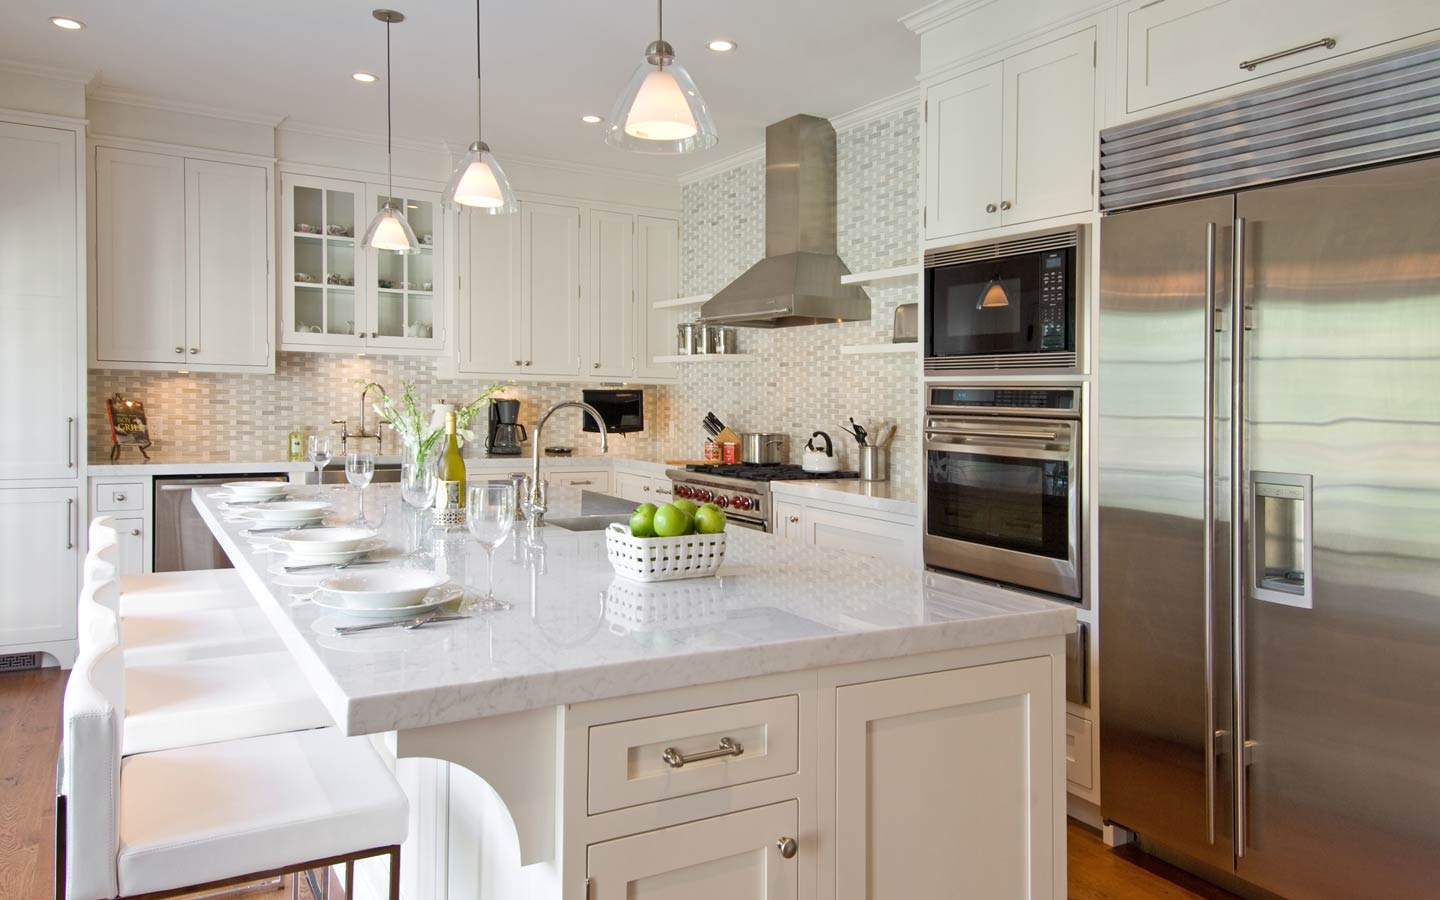 South Hampton Kitchen Design2 Erin Escobar Designs